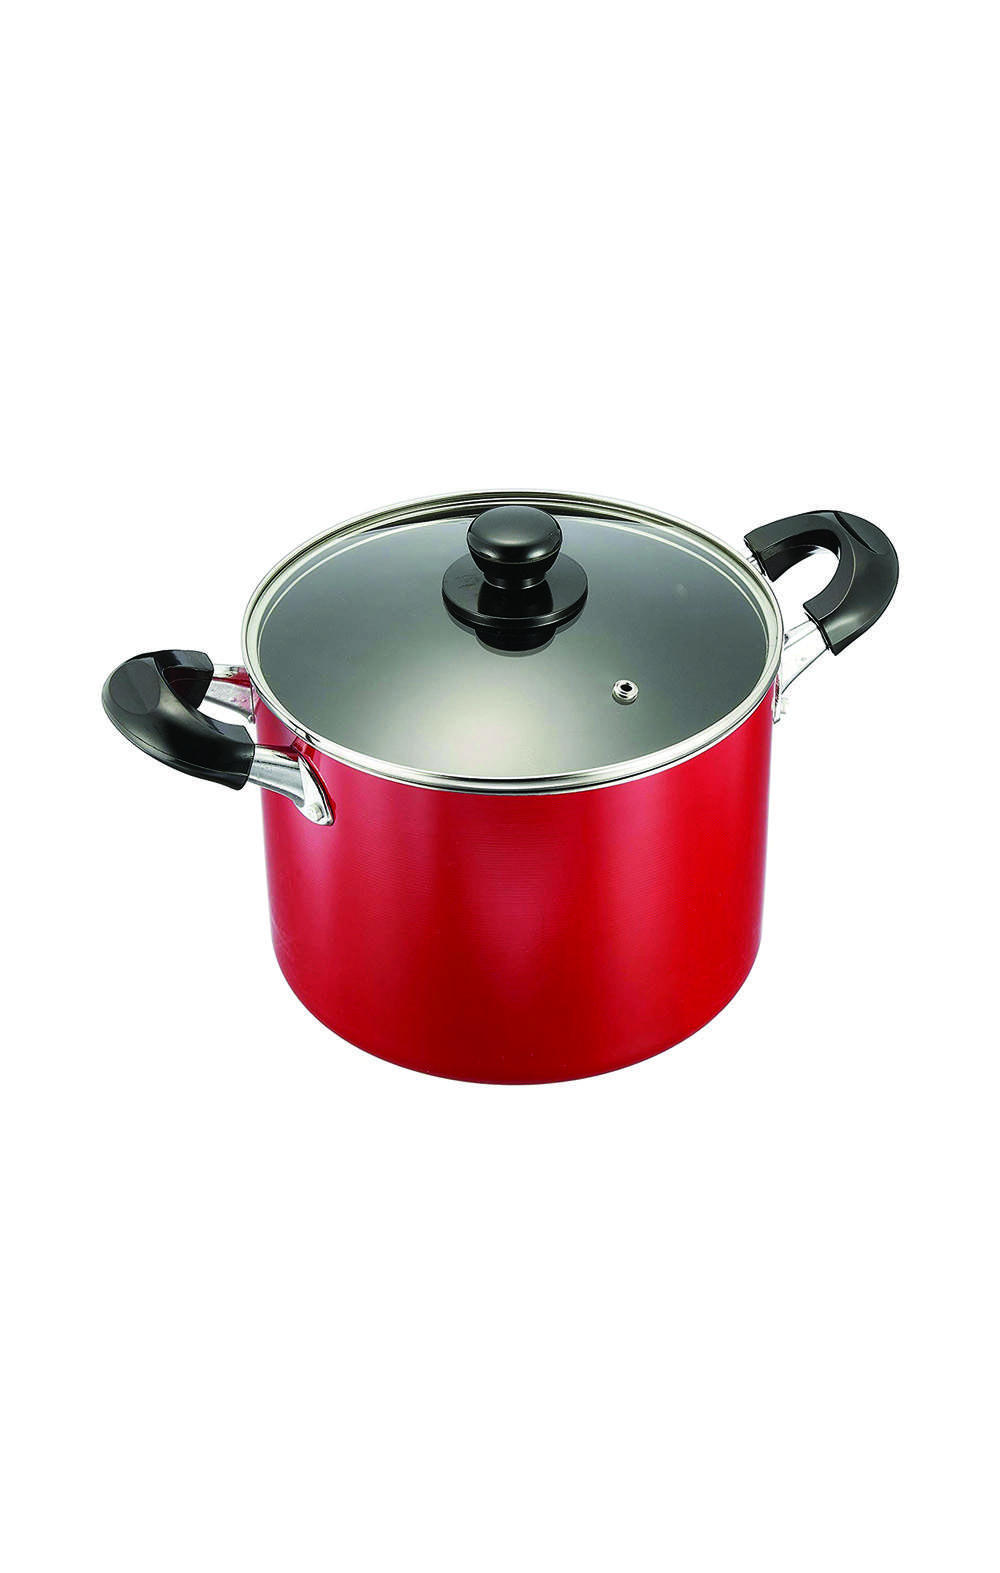 Pearl Metal HB-1449 with Glass Lid Half-Size Pan 21cm قدر